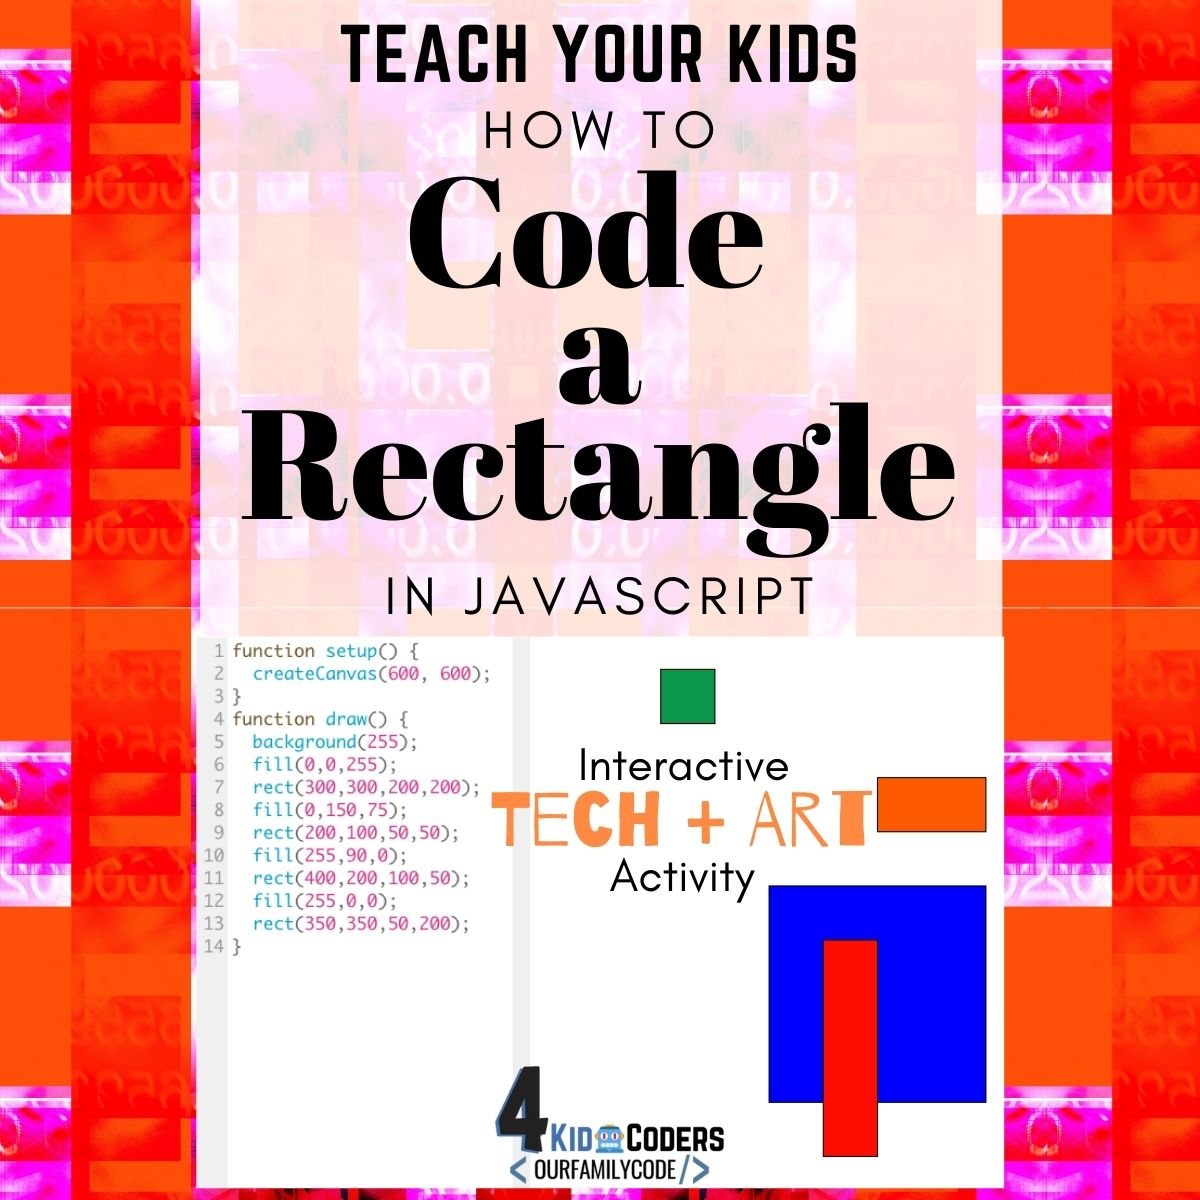 teach kids to code Archives - Our Family Code